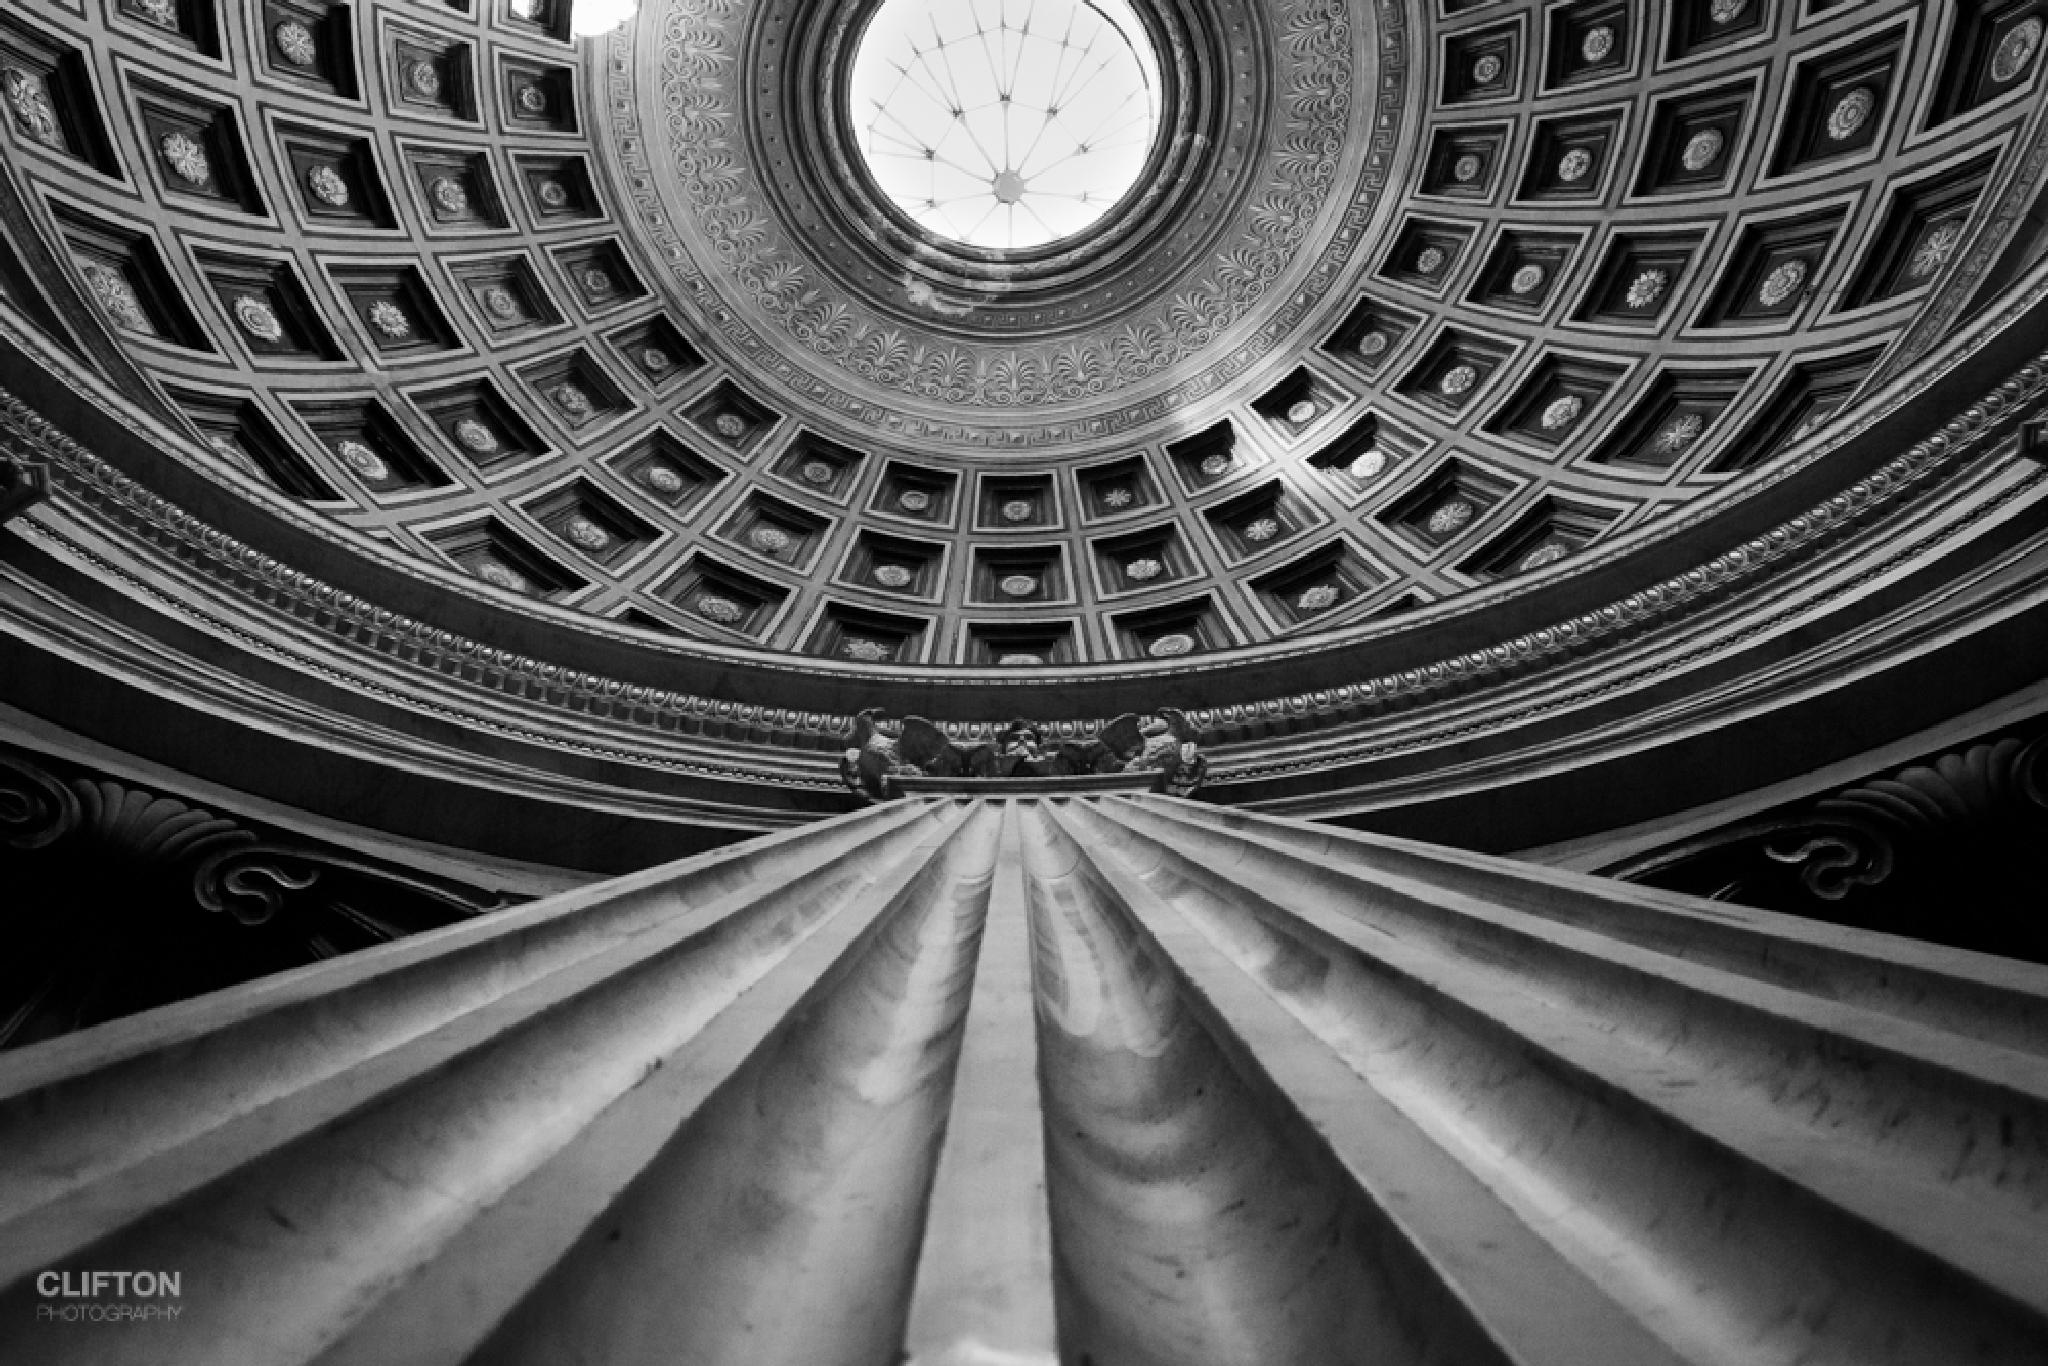 Roman dome by Paul Clifton